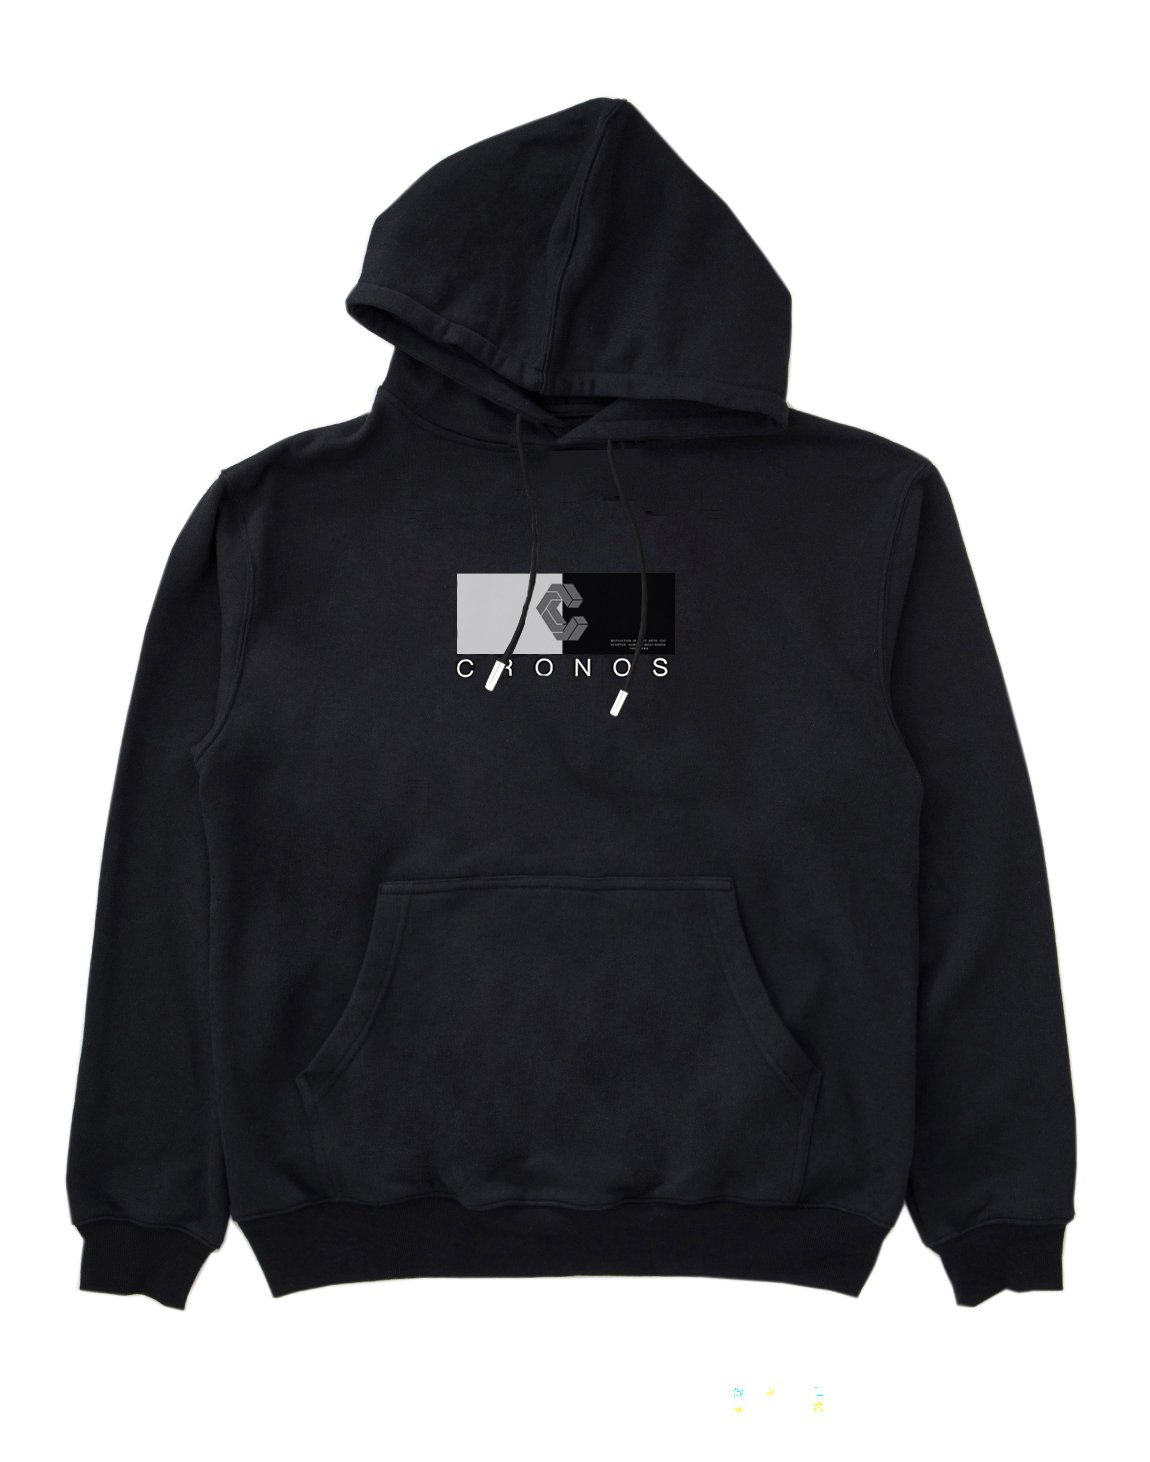 <img class='new_mark_img1' src='https://img.shop-pro.jp/img/new/icons55.gif' style='border:none;display:inline;margin:0px;padding:0px;width:auto;' />CRONOS HALF COLOR HOODY 【BLACK】